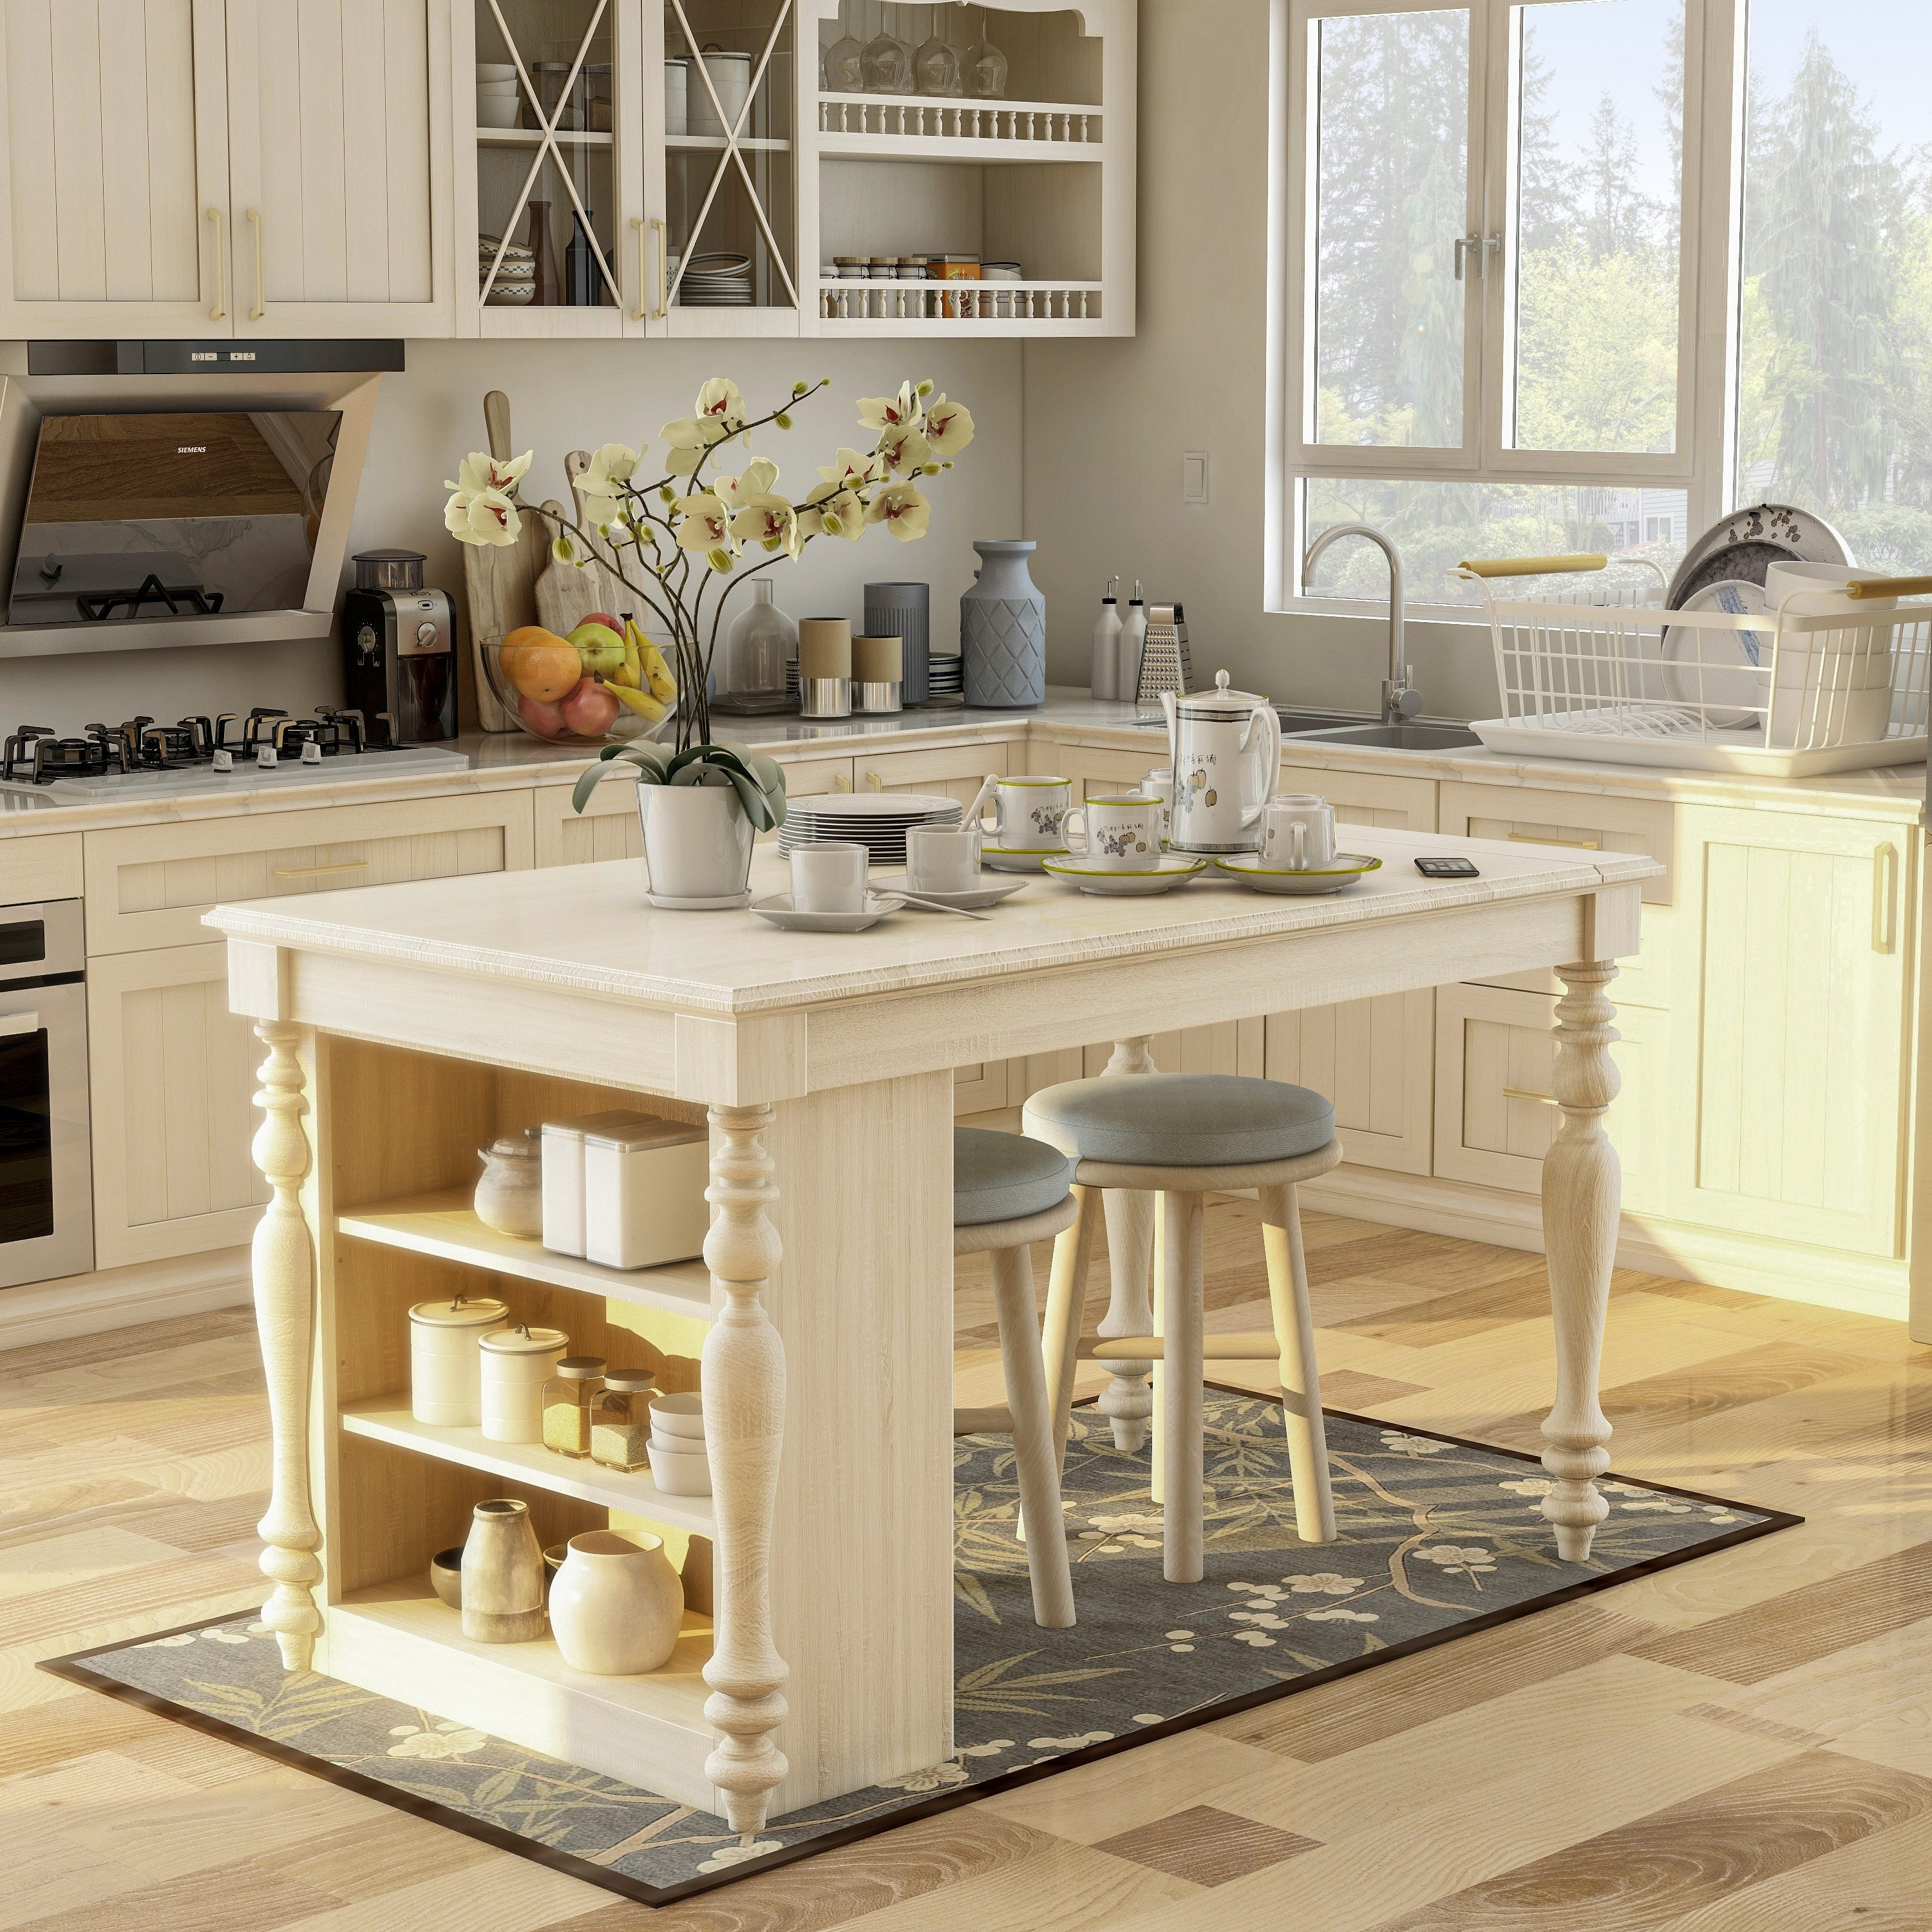 Kitchen Island Clearance Sale Buy White Kitchen Islands Online At Overstock Our Best Kitchen